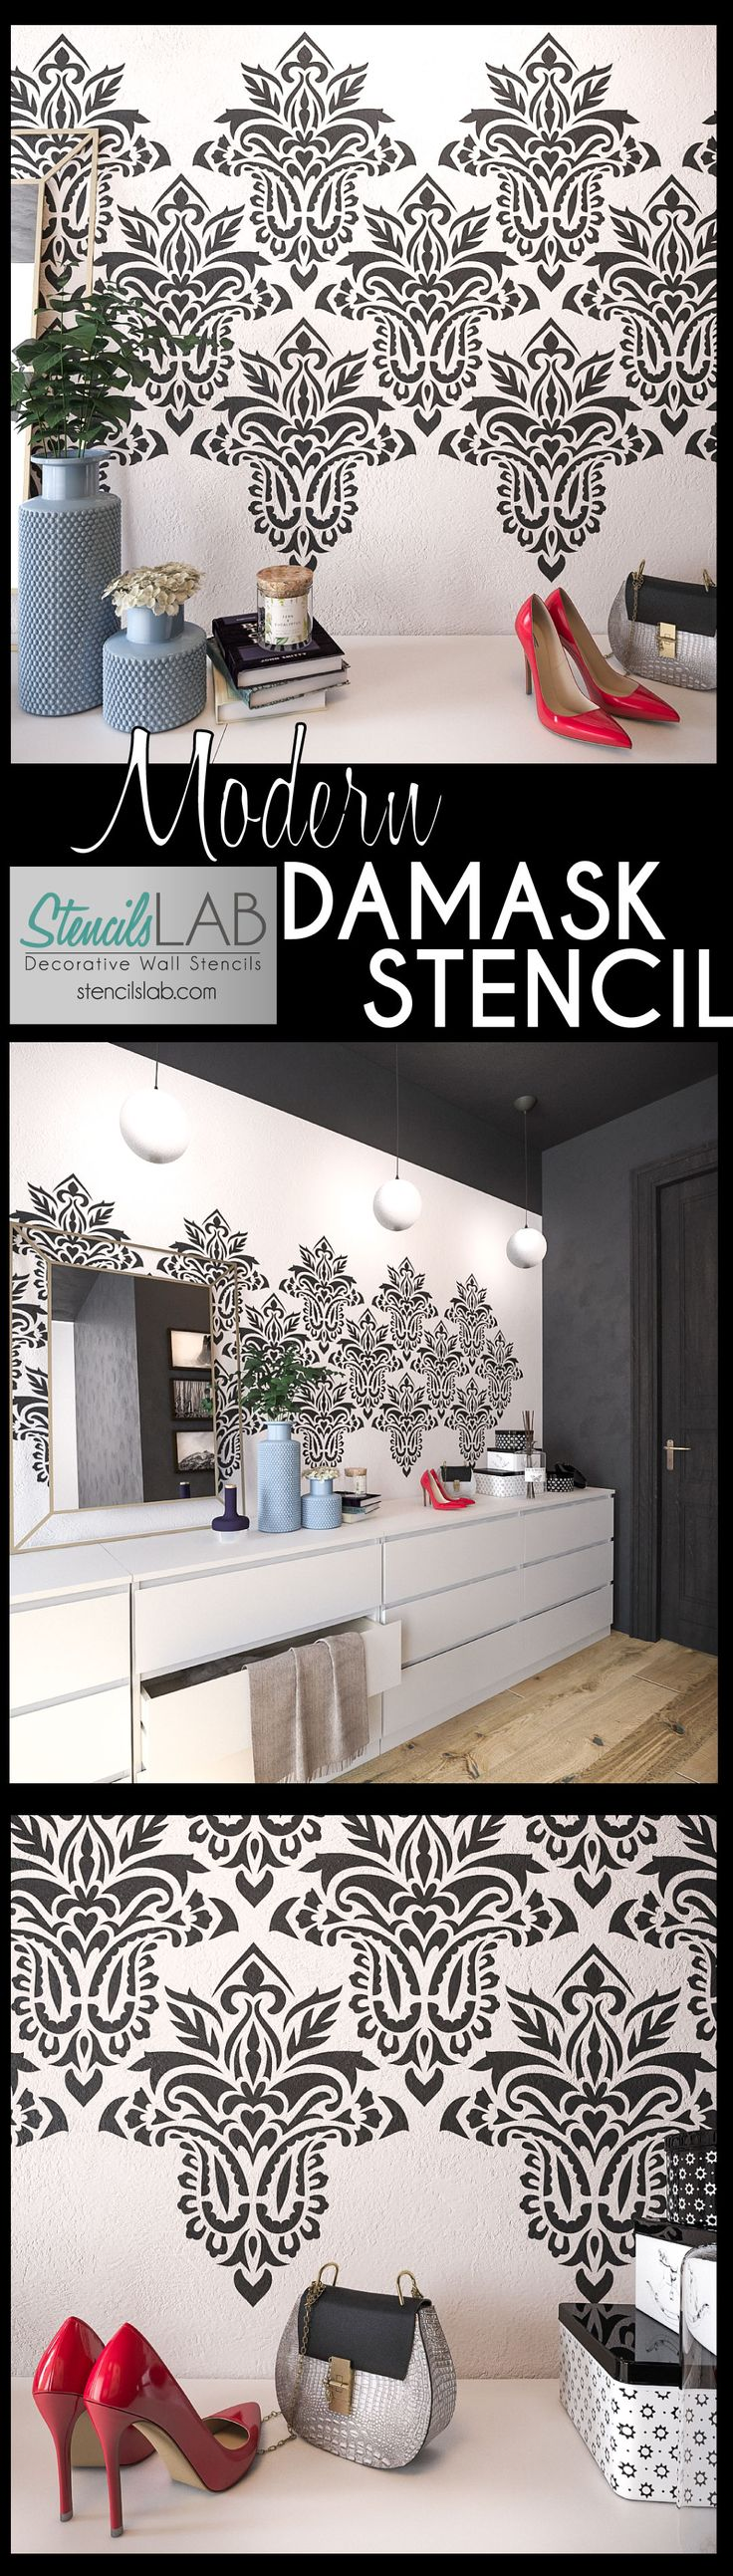 This Sierra- Modern Damask Wall Stencil is an excellent choice to add a timeless and elegant flair to walls at your home. Our large sheet reusable modern wall stencils now make it possible to achieve professional results and to refresh the design of your interior!